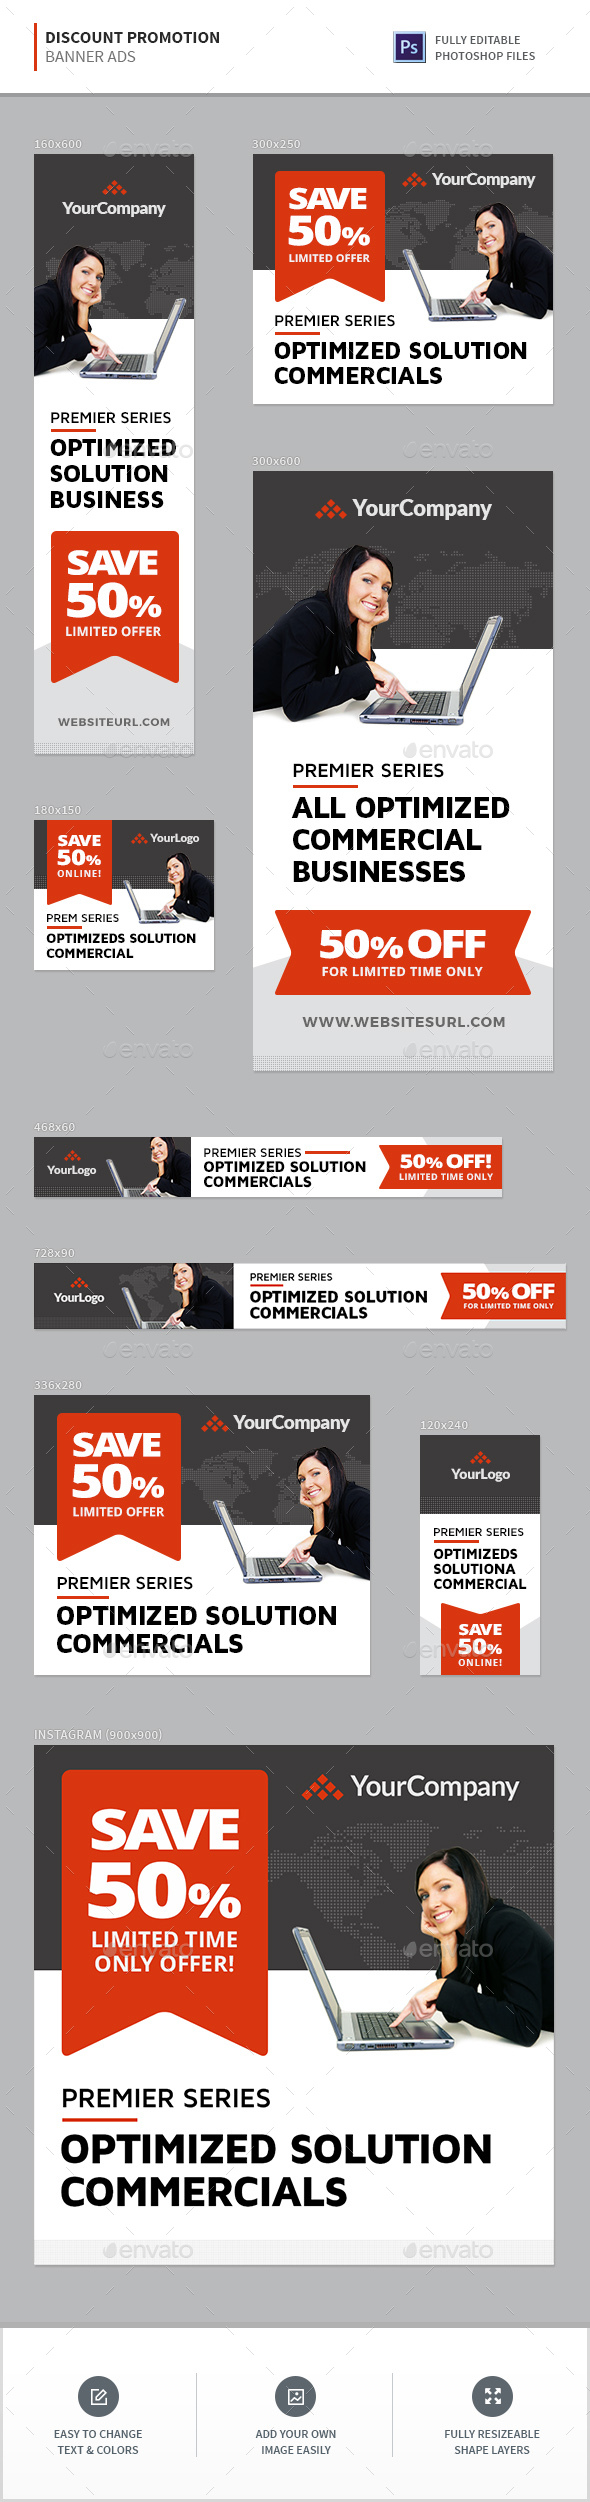 Discount Promotion Banners - Banners & Ads Web Elements